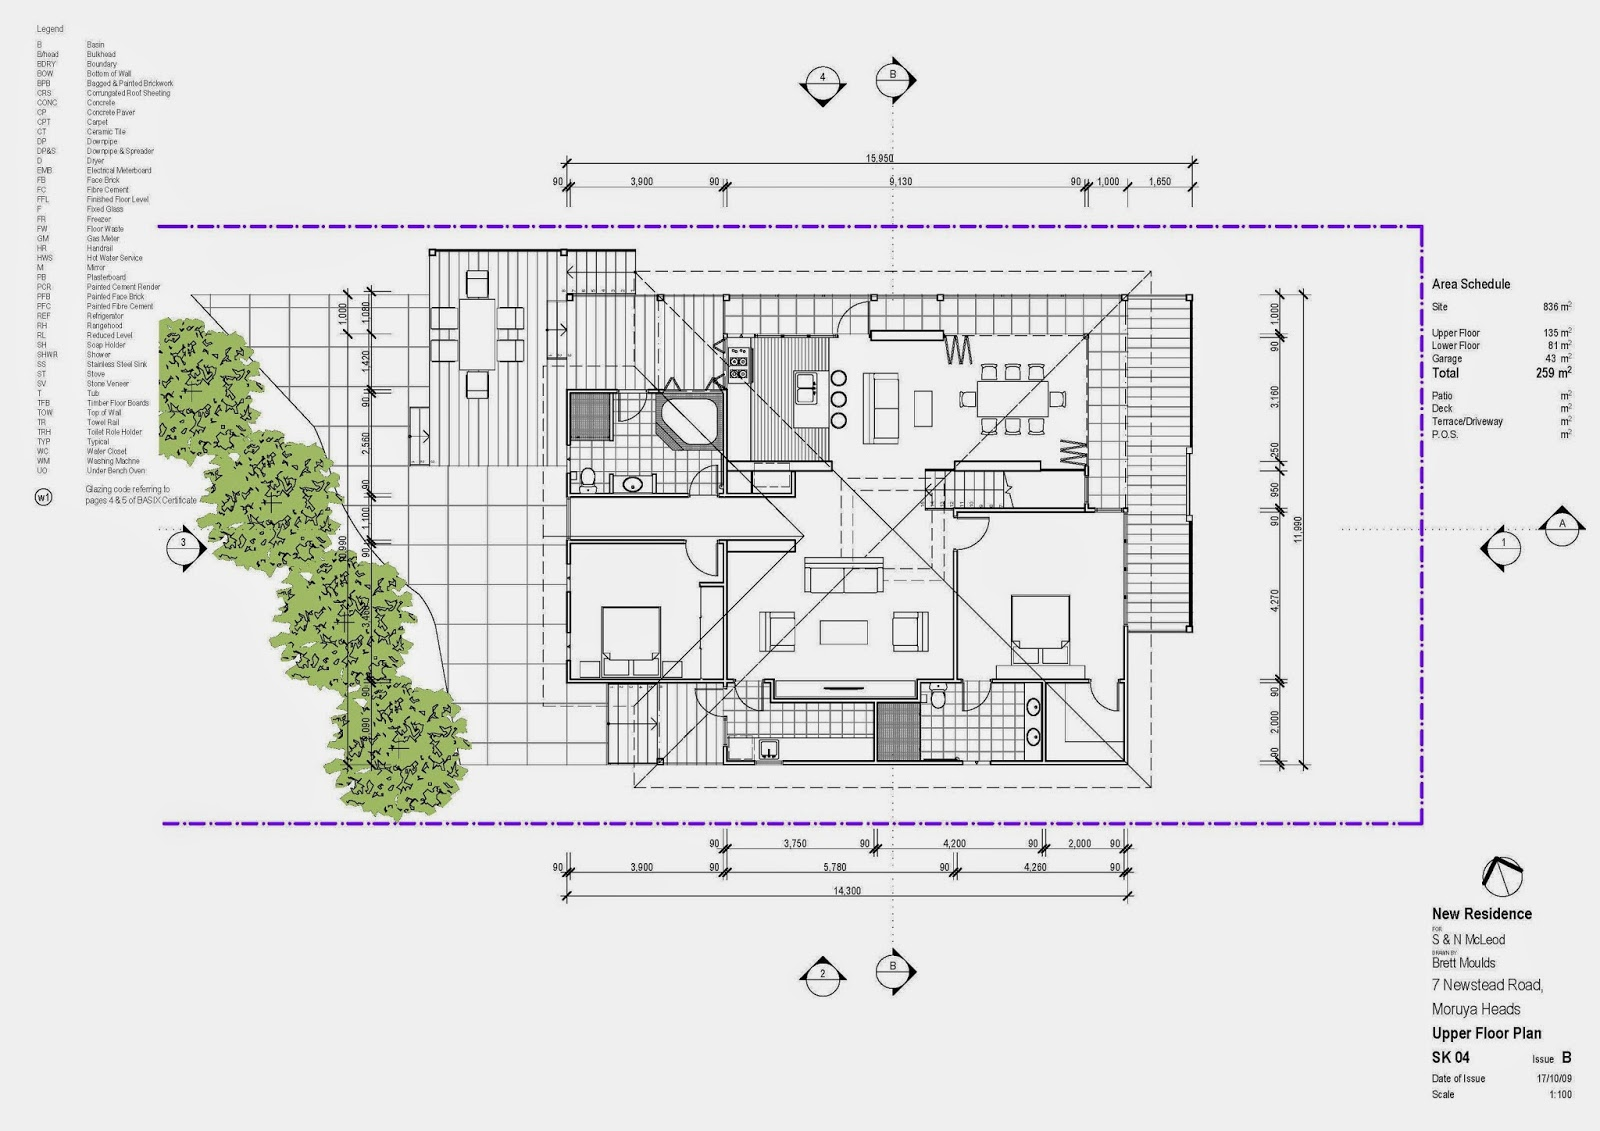 Architectural Site Plan Drawing